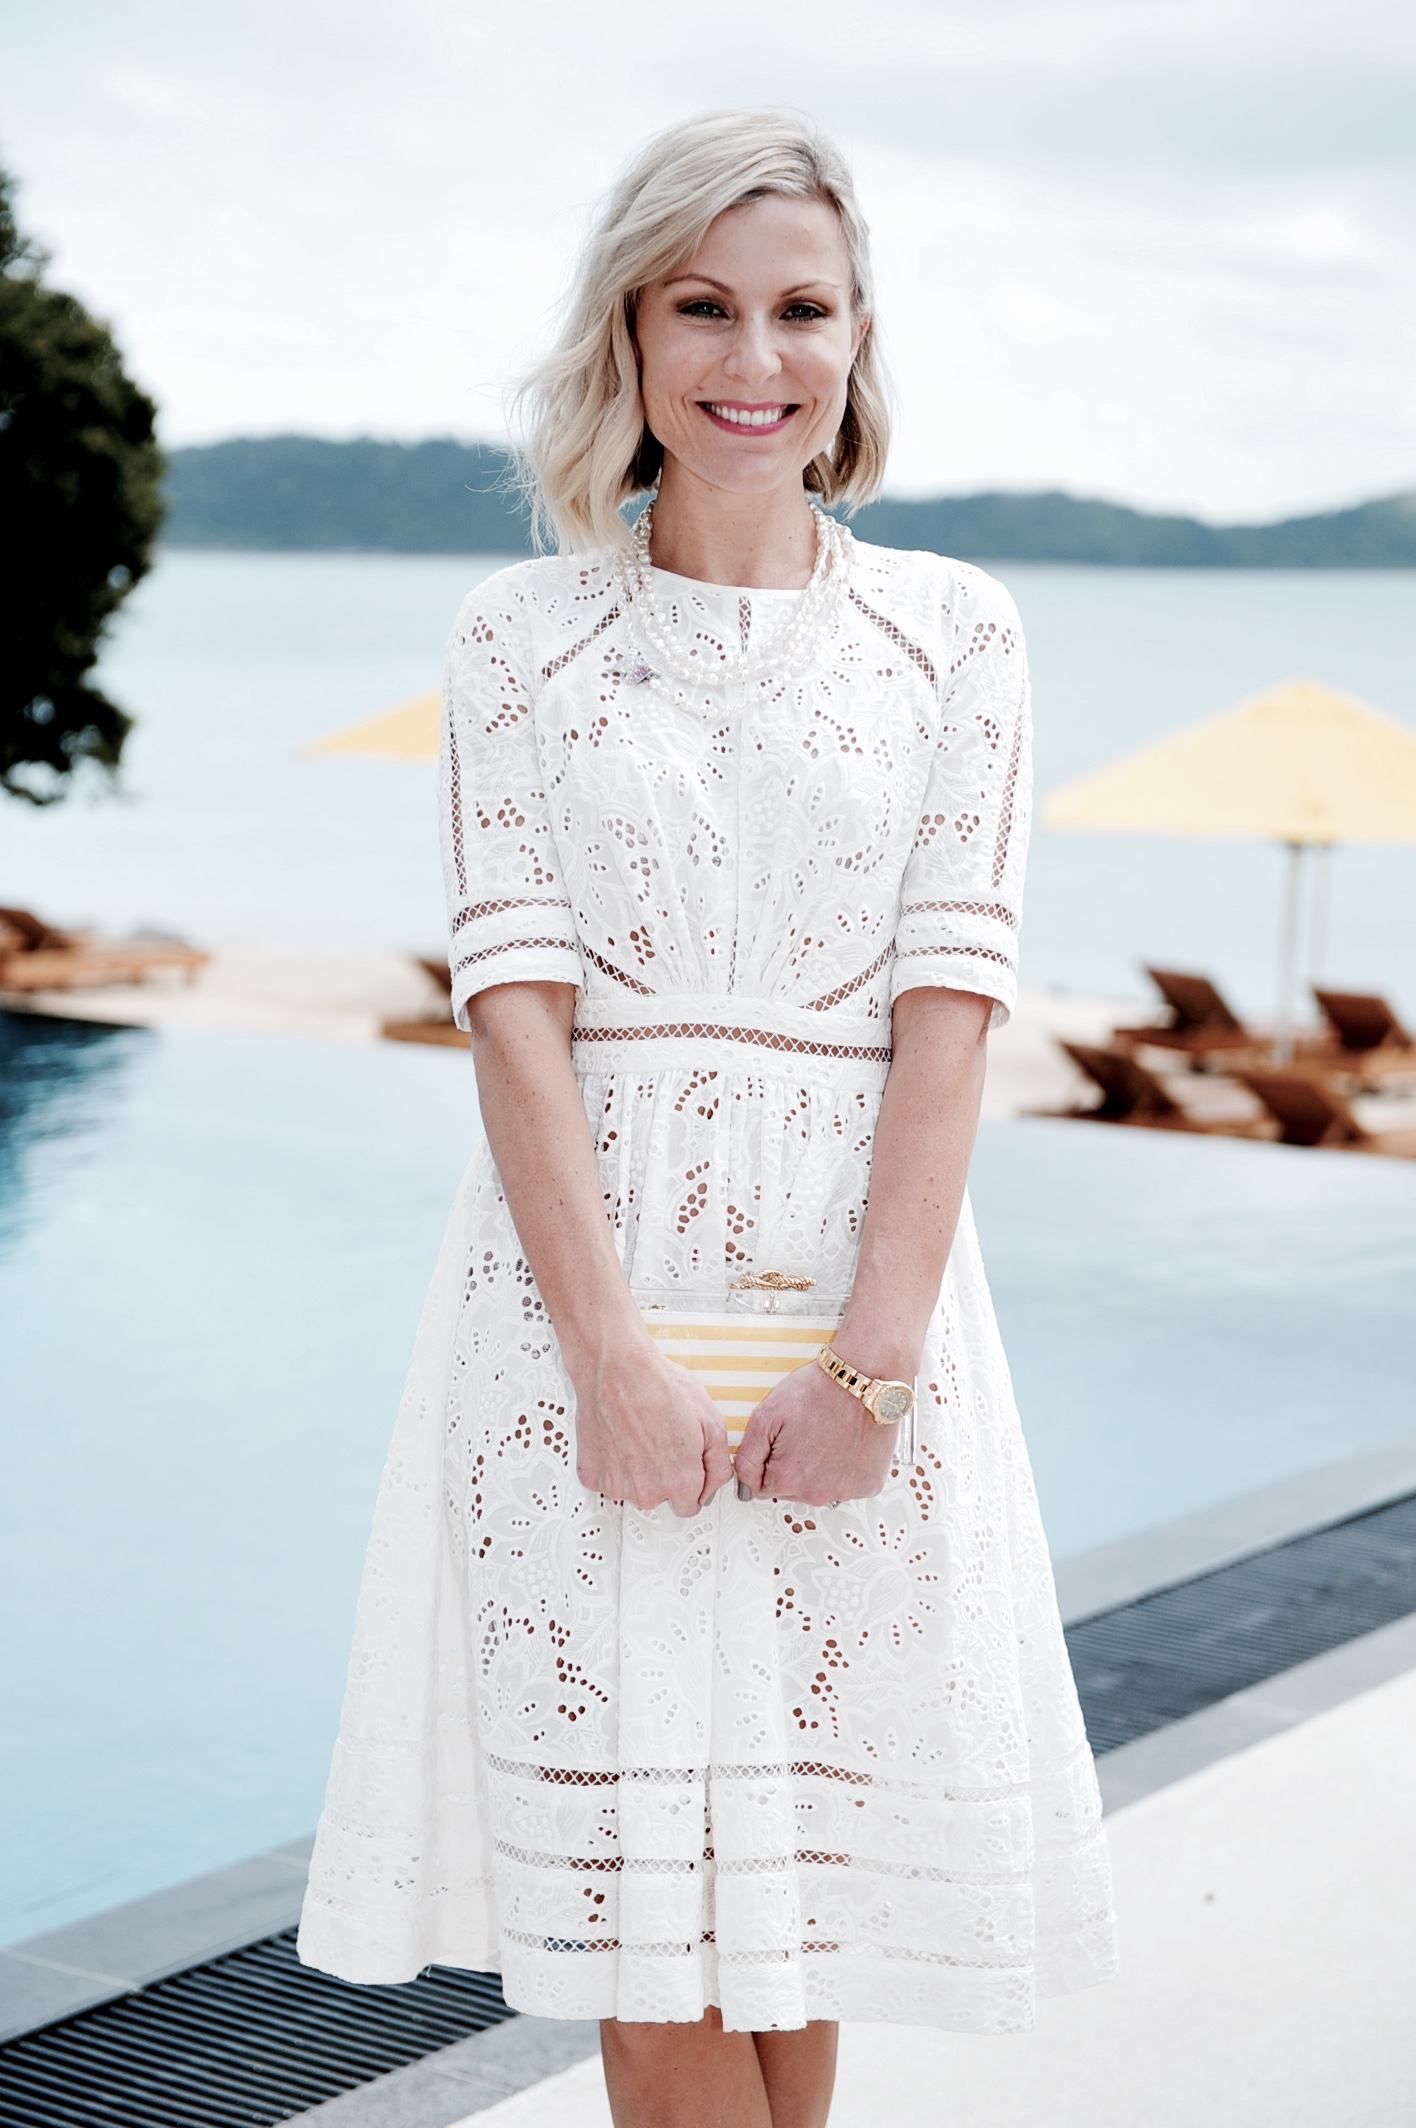 NICKY TINDILL PASPALEY PEARLS LUNCH AT PEBBLE BEACH, QUALIA - AHIRW 2014 HAMILTON ISLAND FRIDAY 22ND AUGUST, 2014 PHOTOGRAPHER: BELINDA ROLLAND © 2014